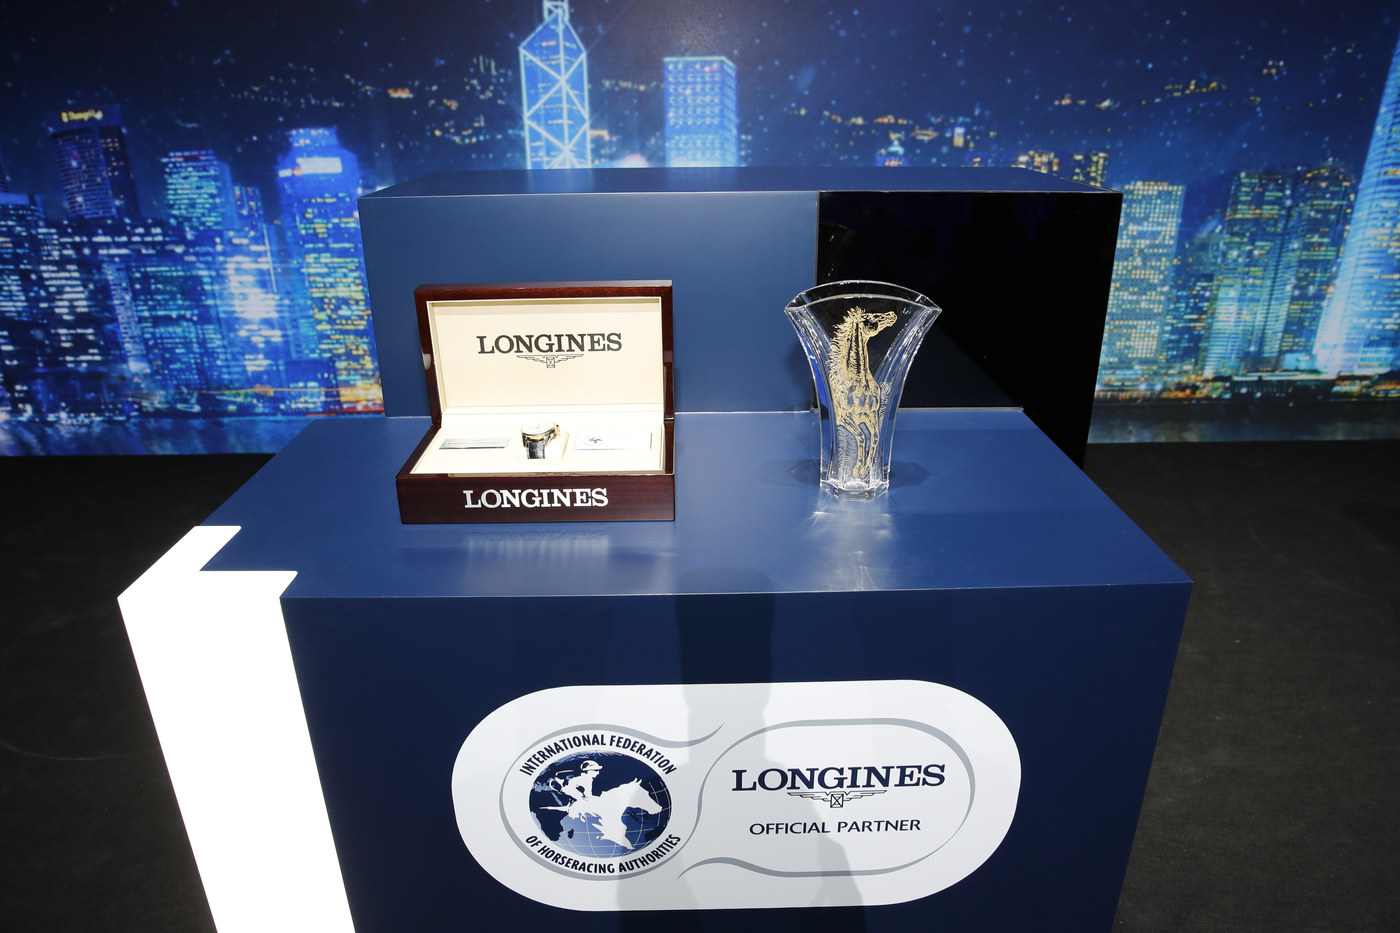 Longines Flat Racing Event: Australian Hugh Bowman receives the 2017 Longines World's Best Jockey Award in Hong Kong 4